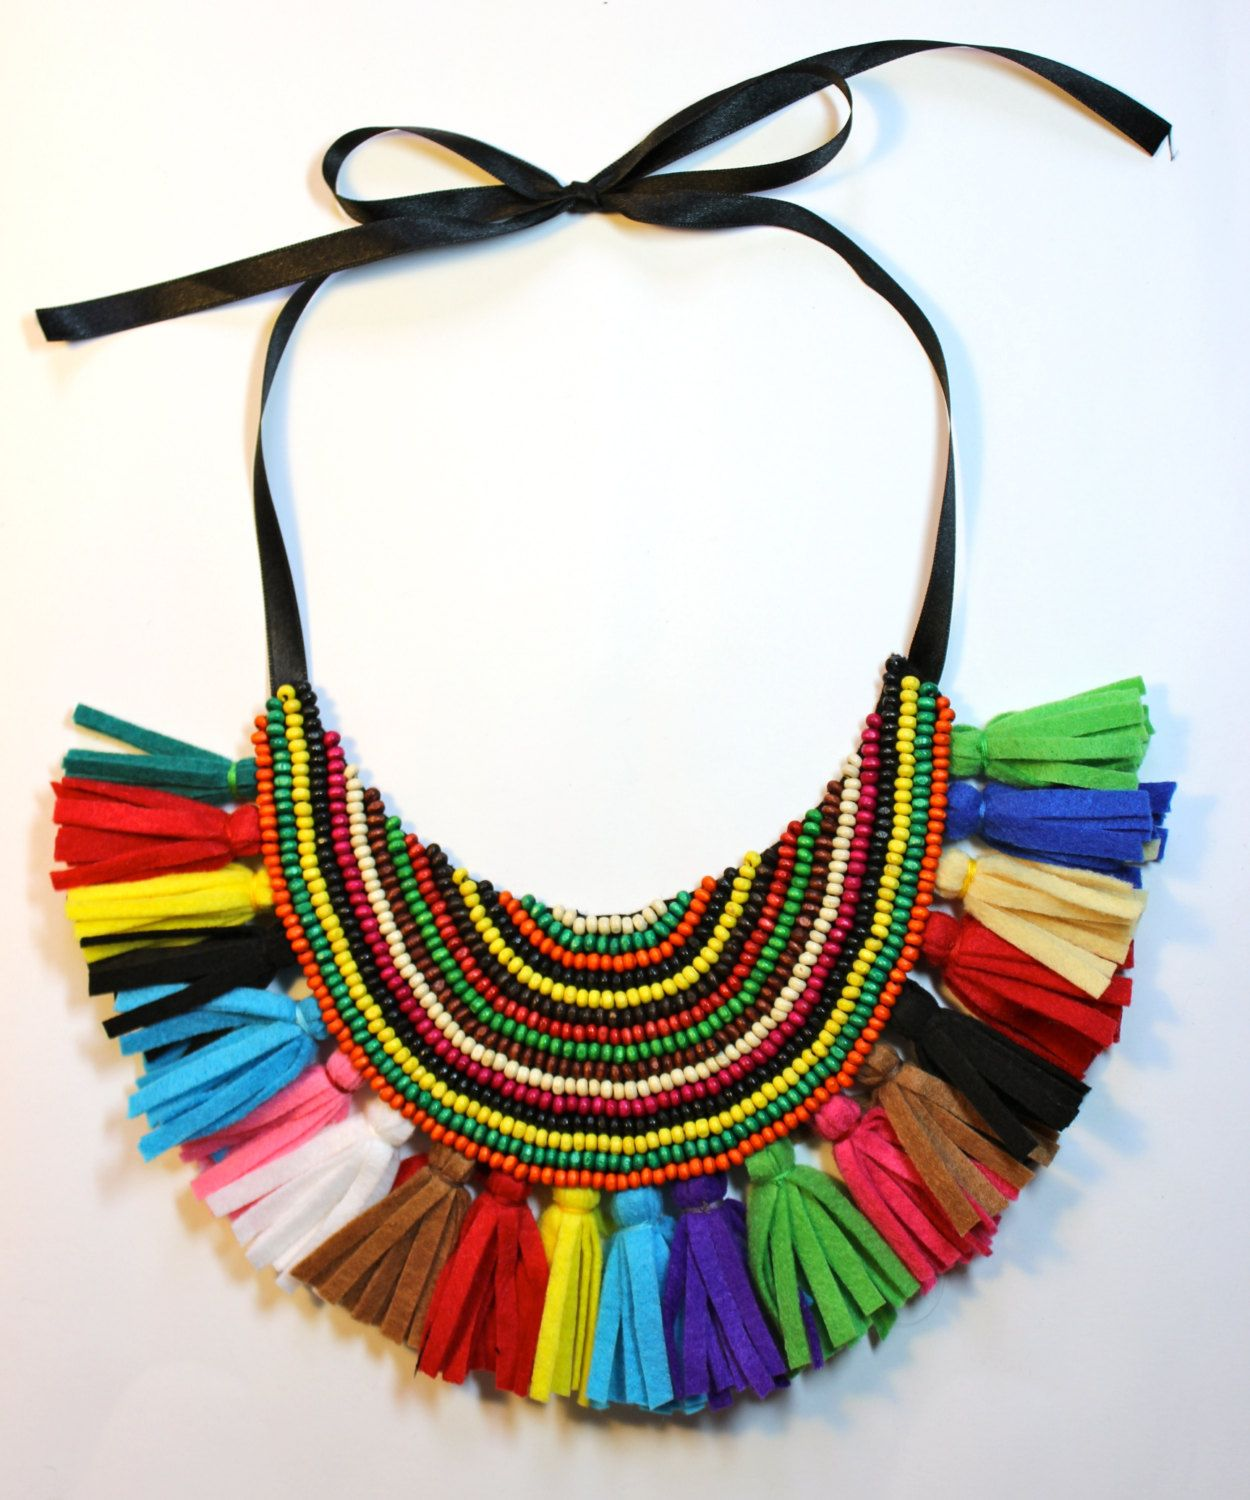 Tribal bib necklace with tassels | hand made accessories | Pinterest ...